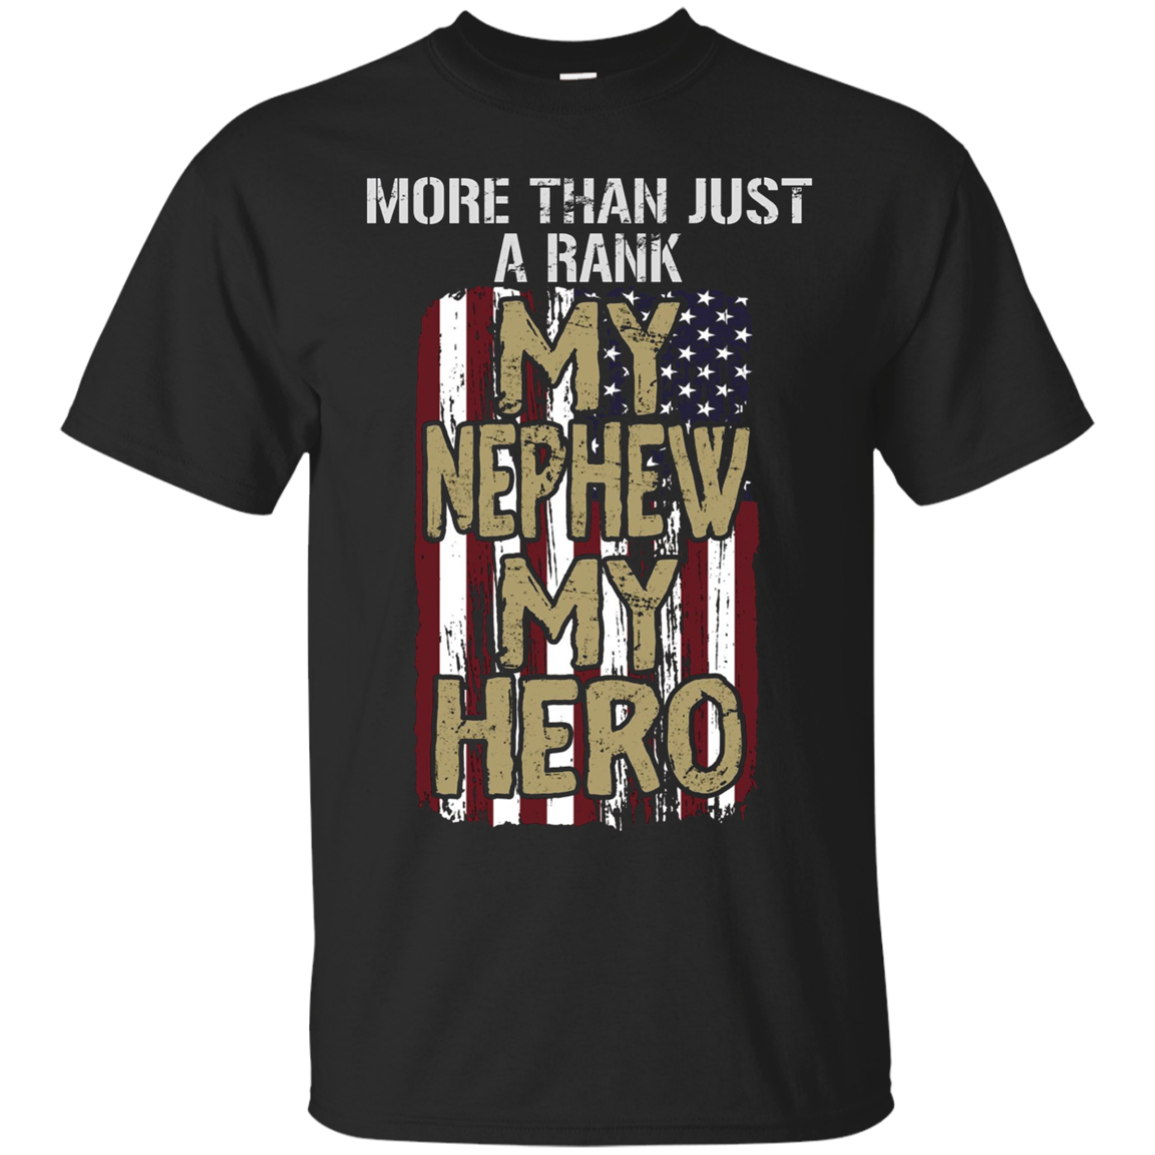 Military Nephew - My Hero T-Shirt